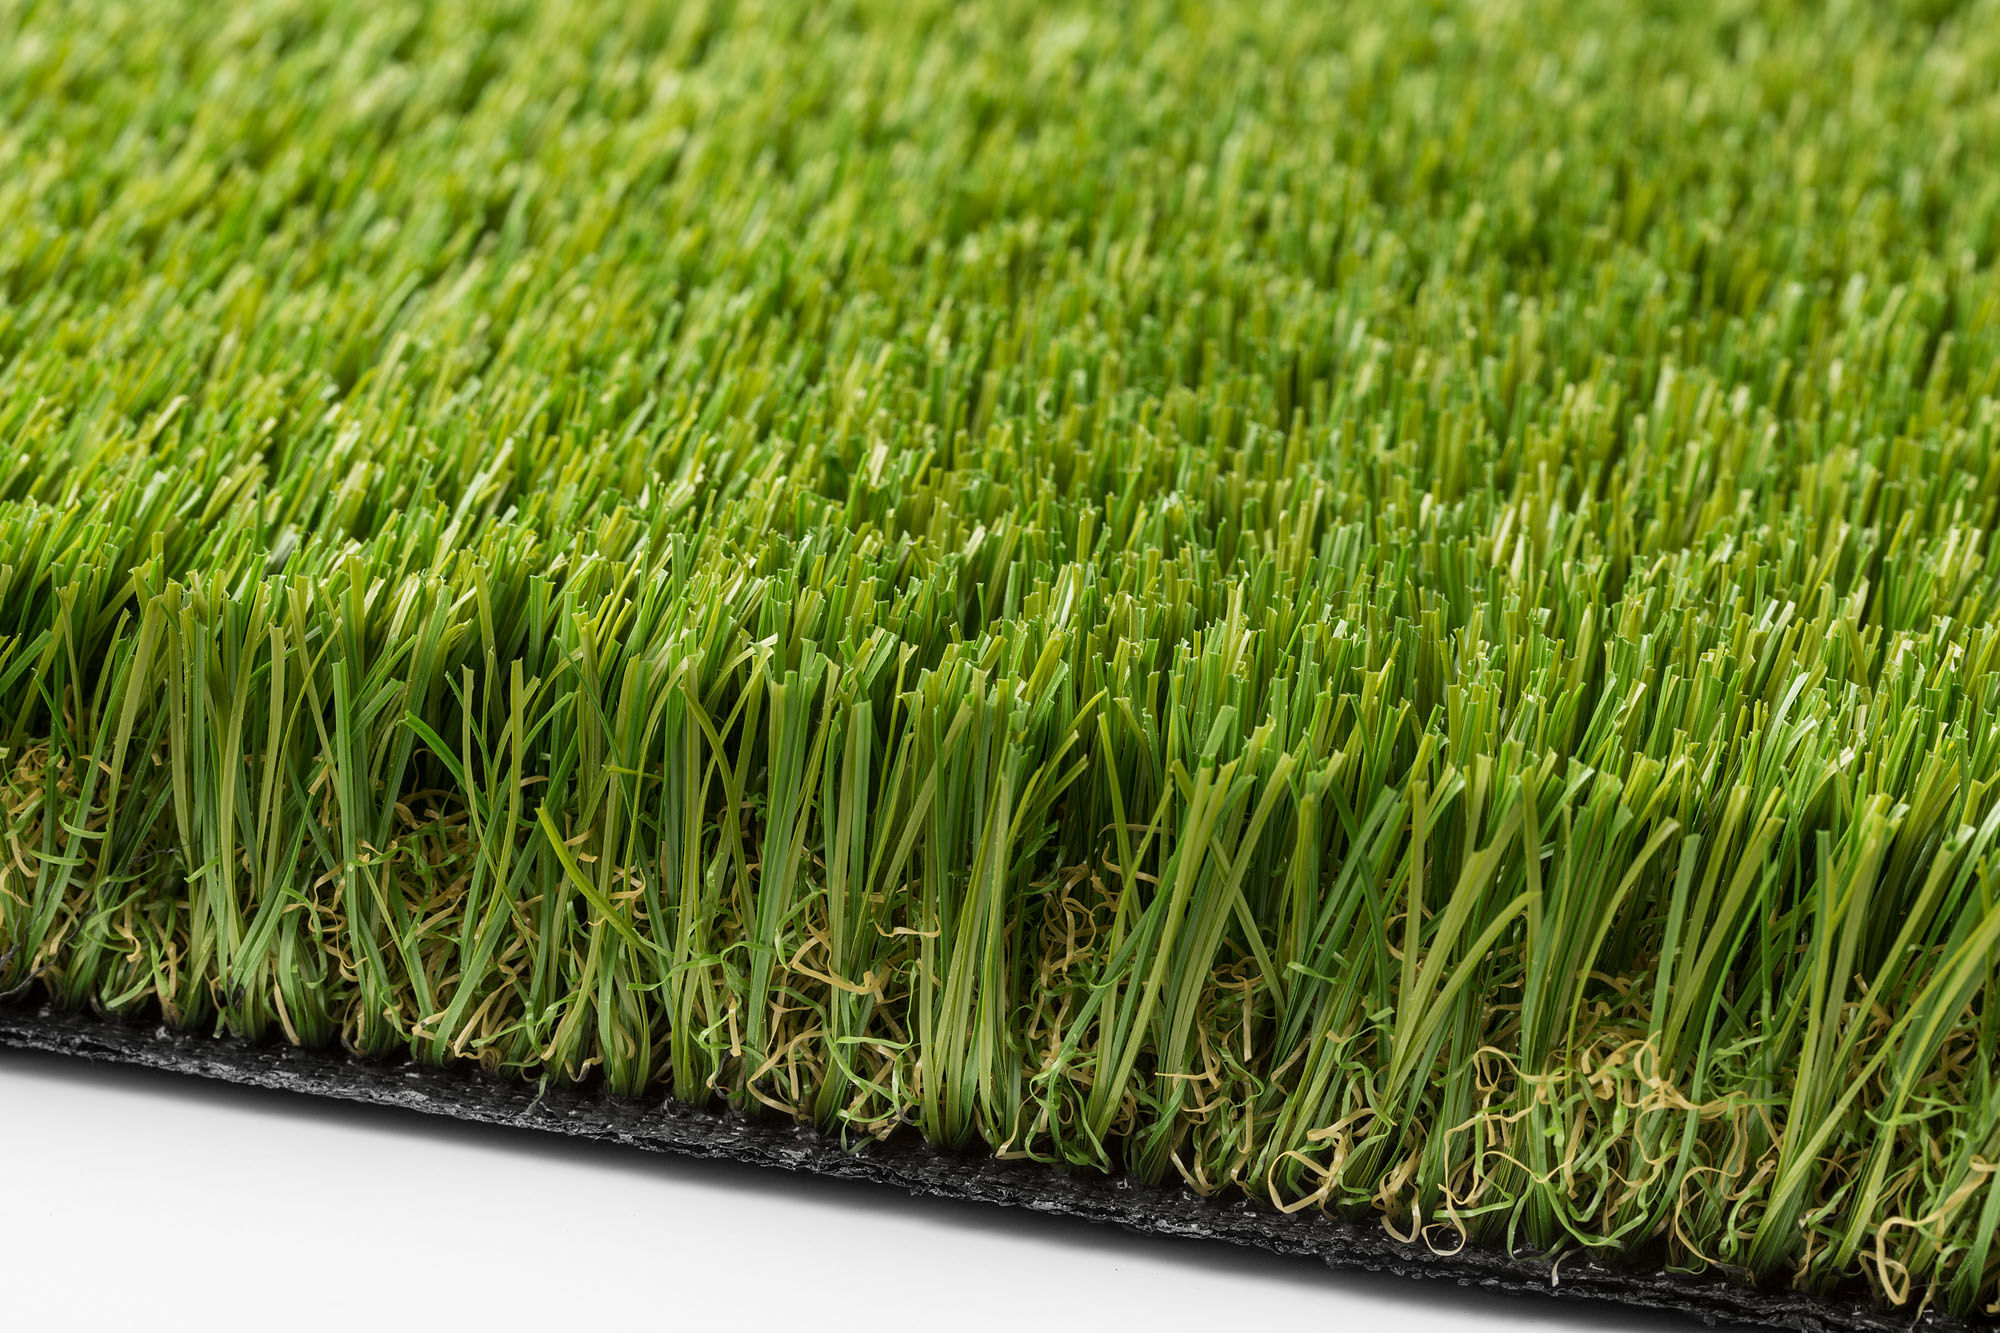 Fake Grass Prices Artificial Grass Products For Gardens Buzz Grass